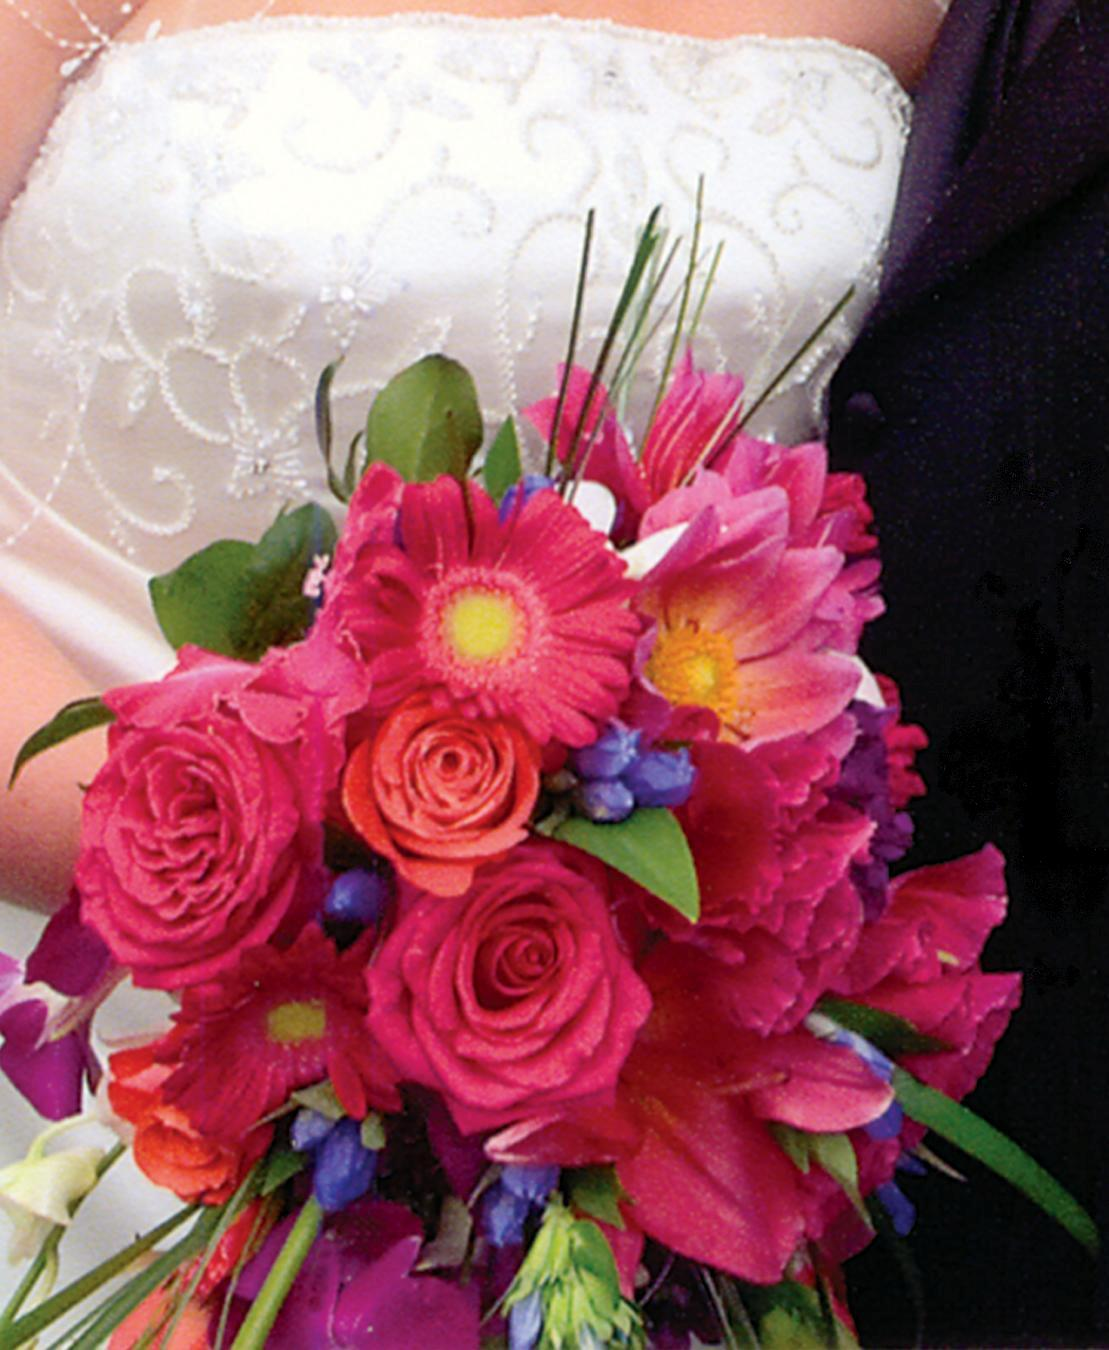 About Marriage: Marriage Flower Bouquet 2013